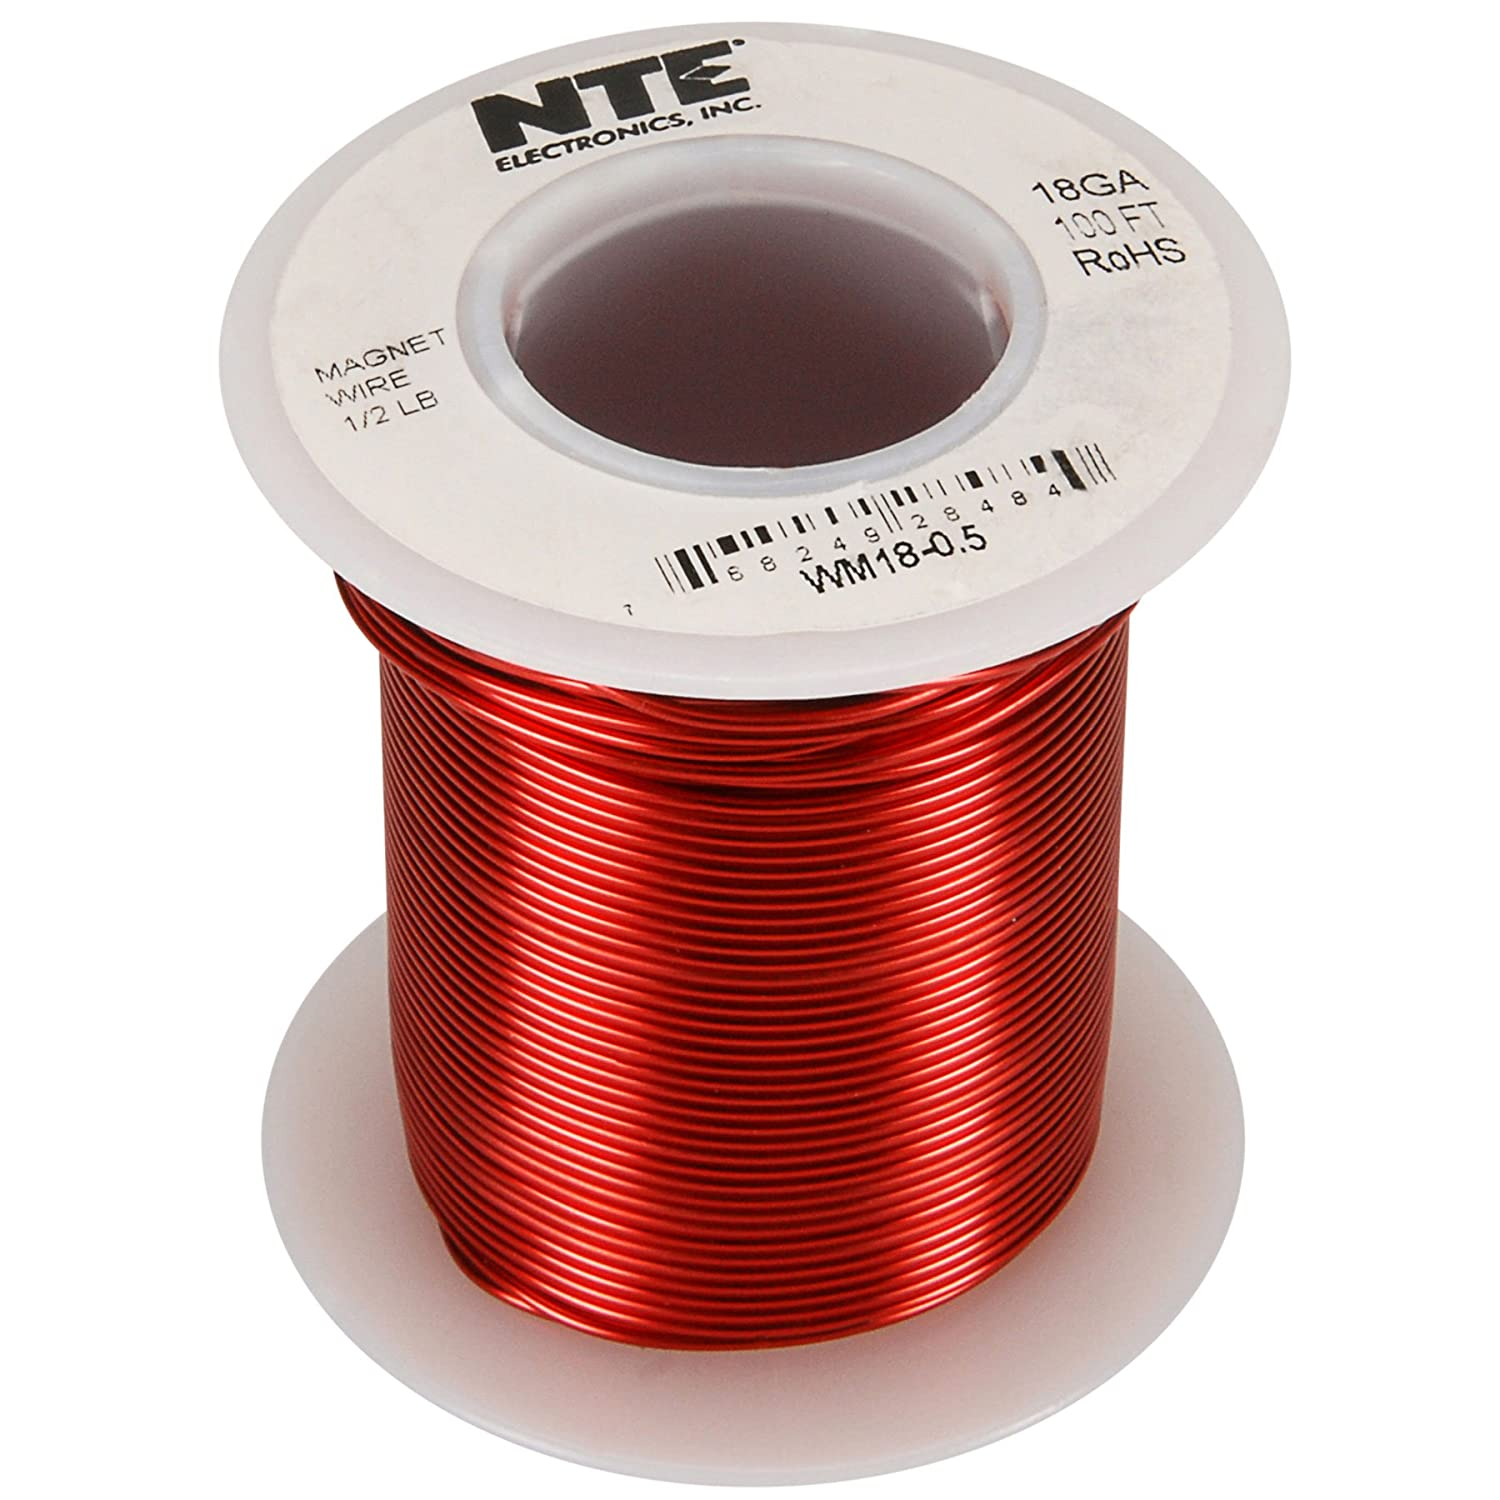 NTE Electronics WM18-0.5 Series WM Magnet Hook Up Wire, Solid, Type 18 Gauge, 0.5 lb. Spool, 100' Length 100' Length